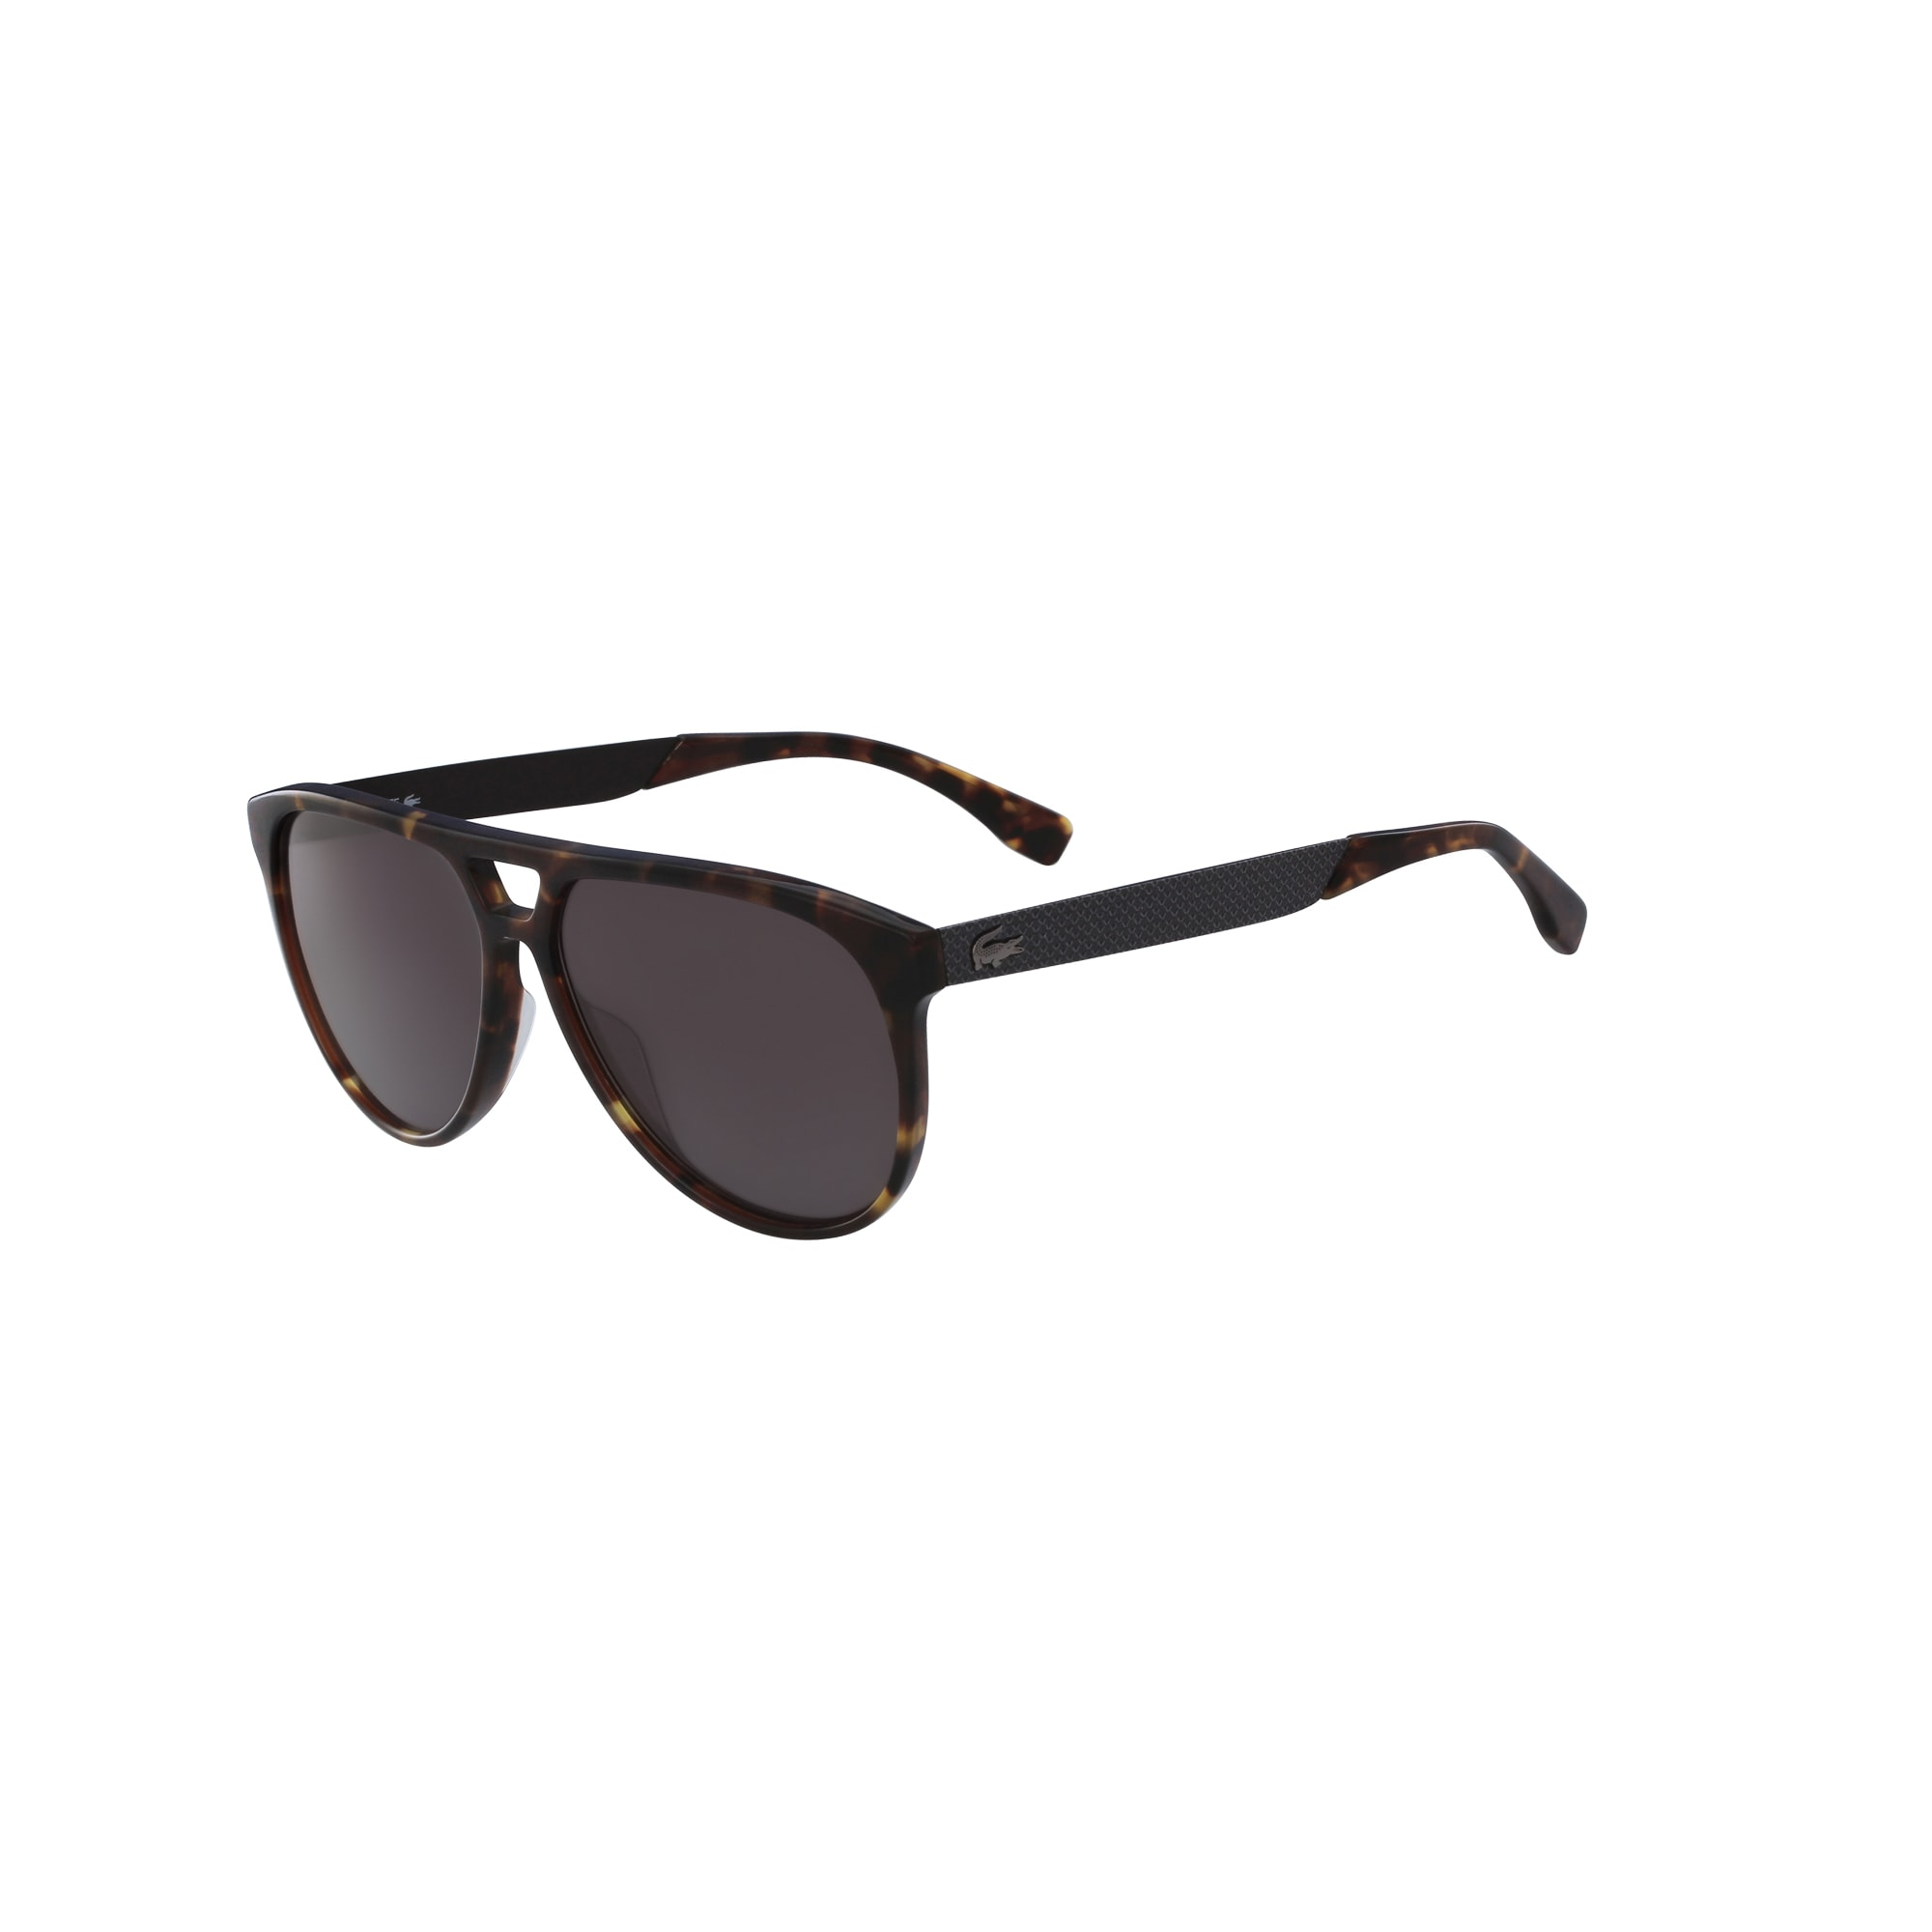 Men's Plastic Aviator Sunglasses